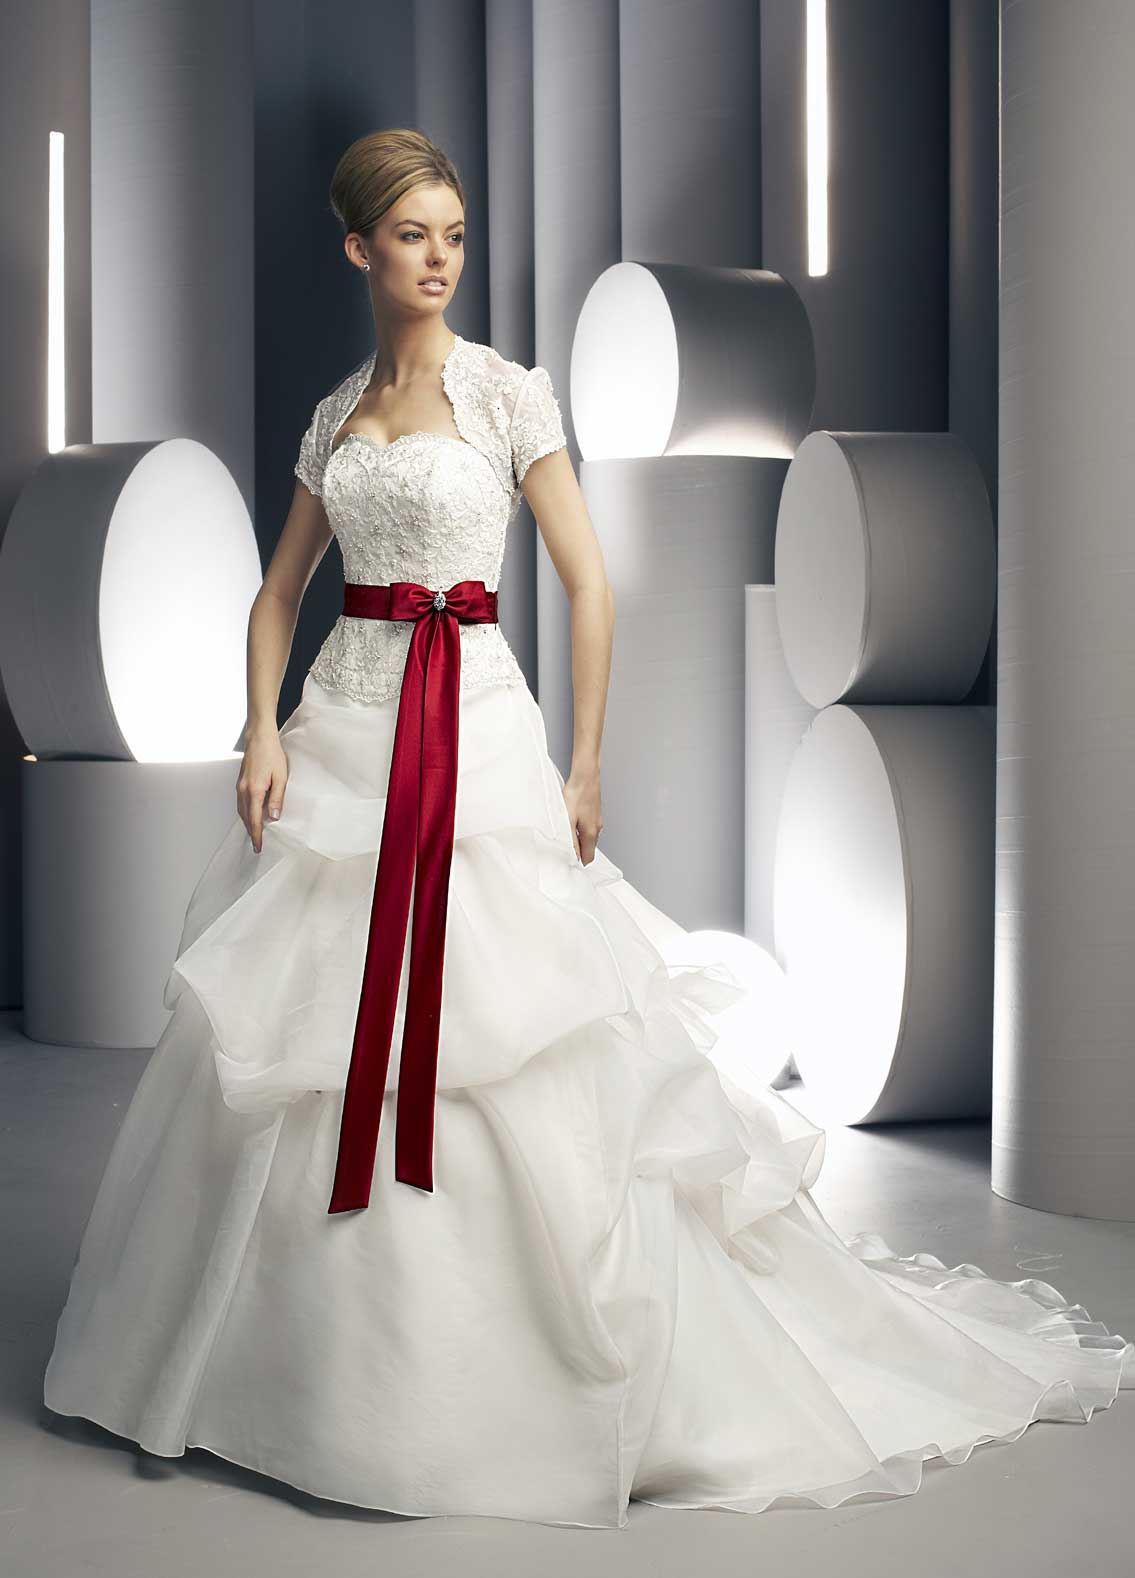 Jewelry Designs Bridal Gowns Designs With Red Shade